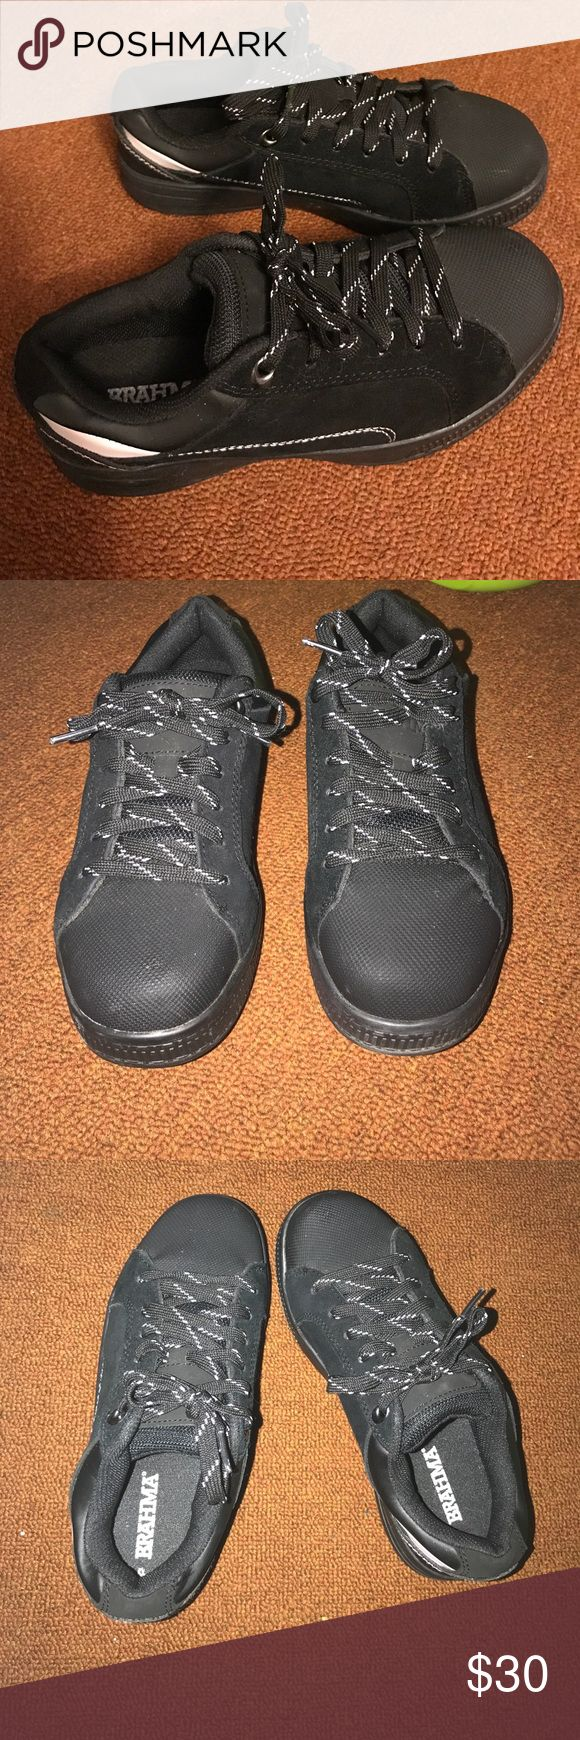 Brahma steel toe shoes An alternate to steel toe boots for skater type. Very comfortable. Size 6.5. Bought them for side job and only wore them once. Brahma Other